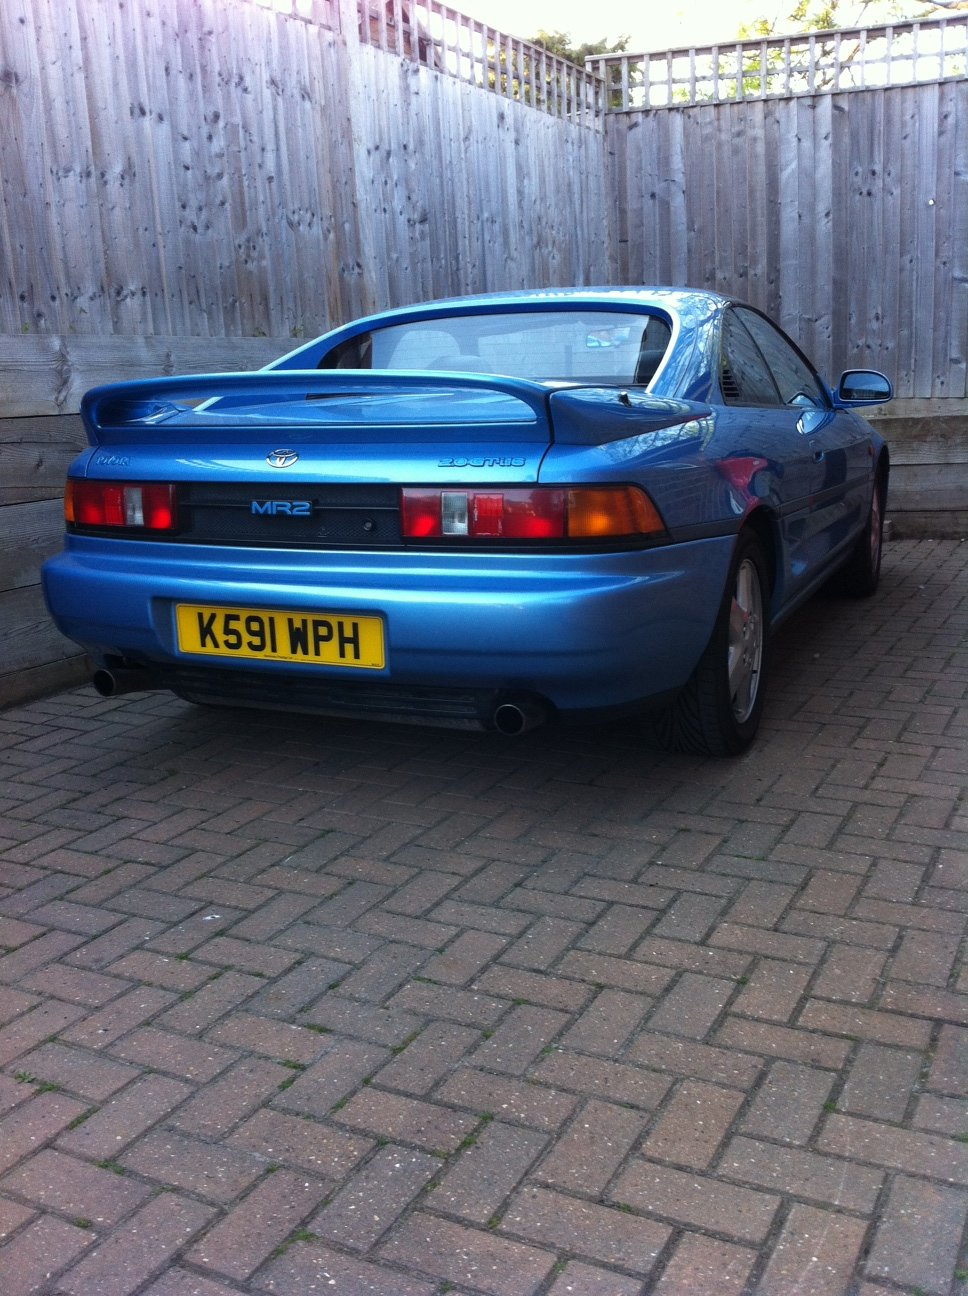 1992 MR2 gt t-bar. Leather. air-con. 79k miles. For Sale (picture 2 of 5)